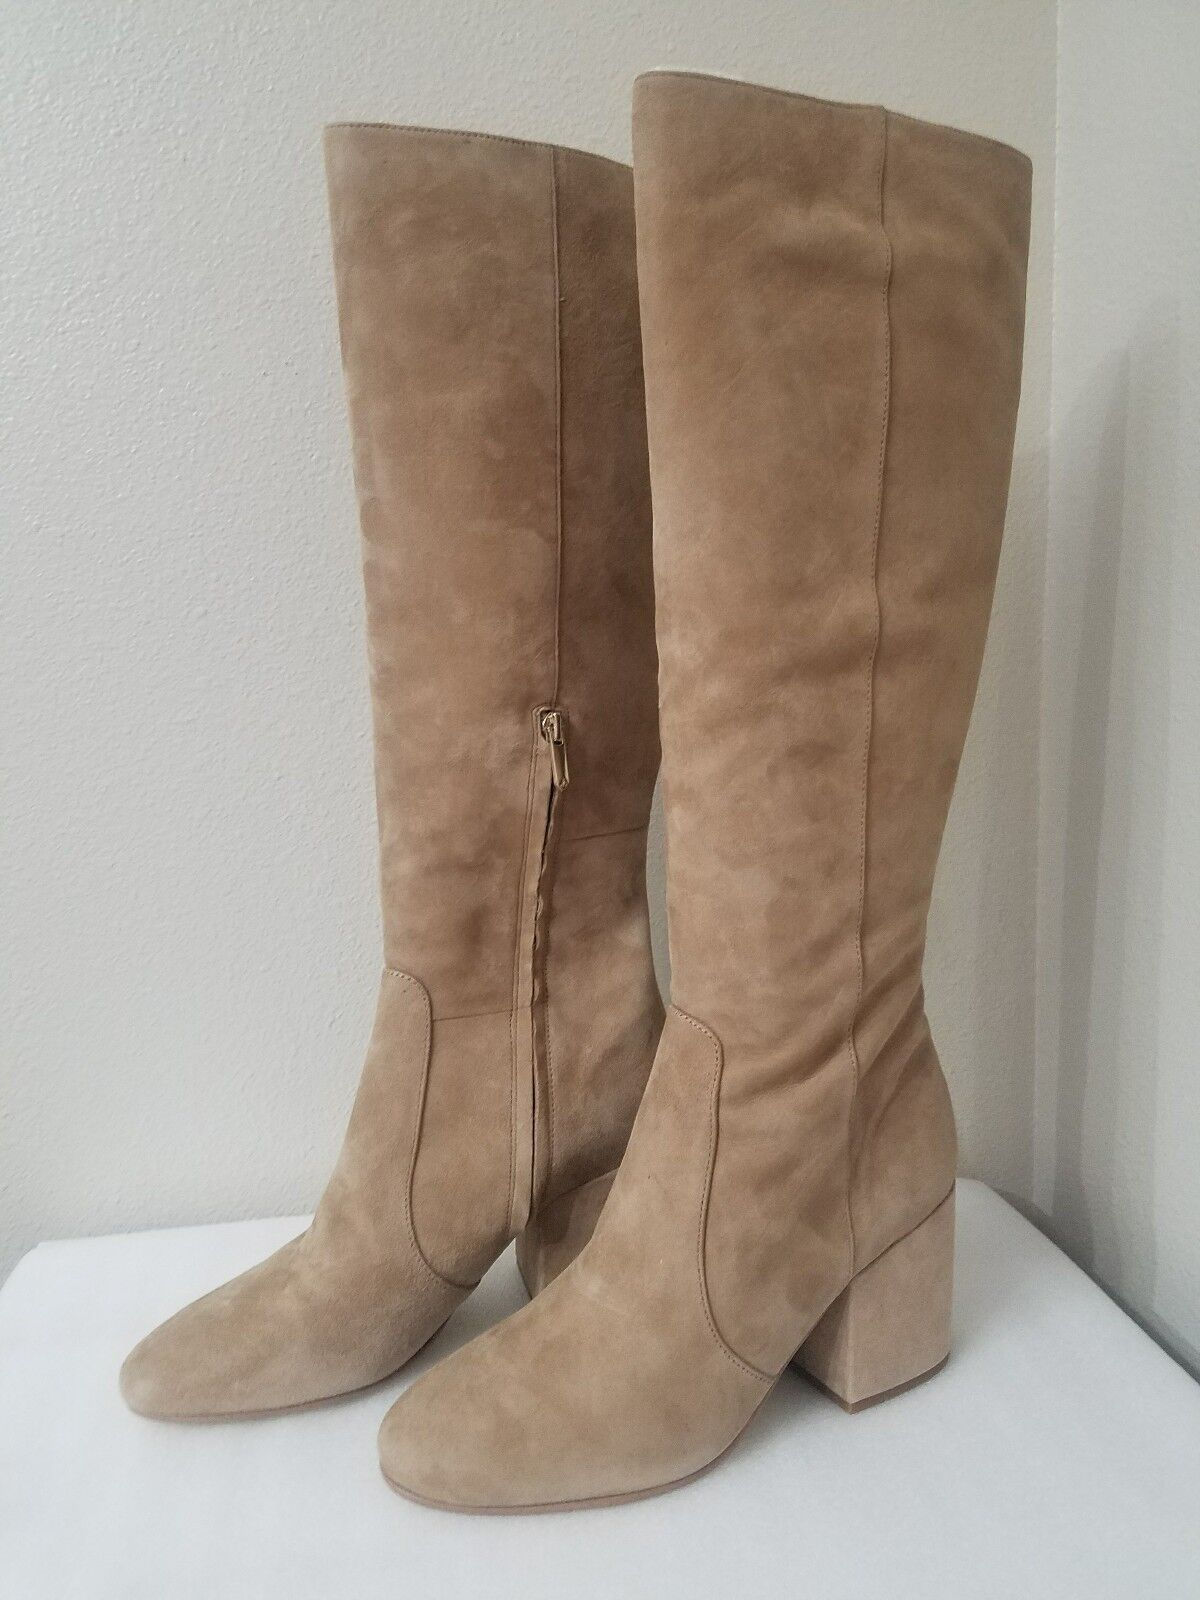 Sam Edelman Thora Oatmeal Suede Leather Tall Boots 9.5M